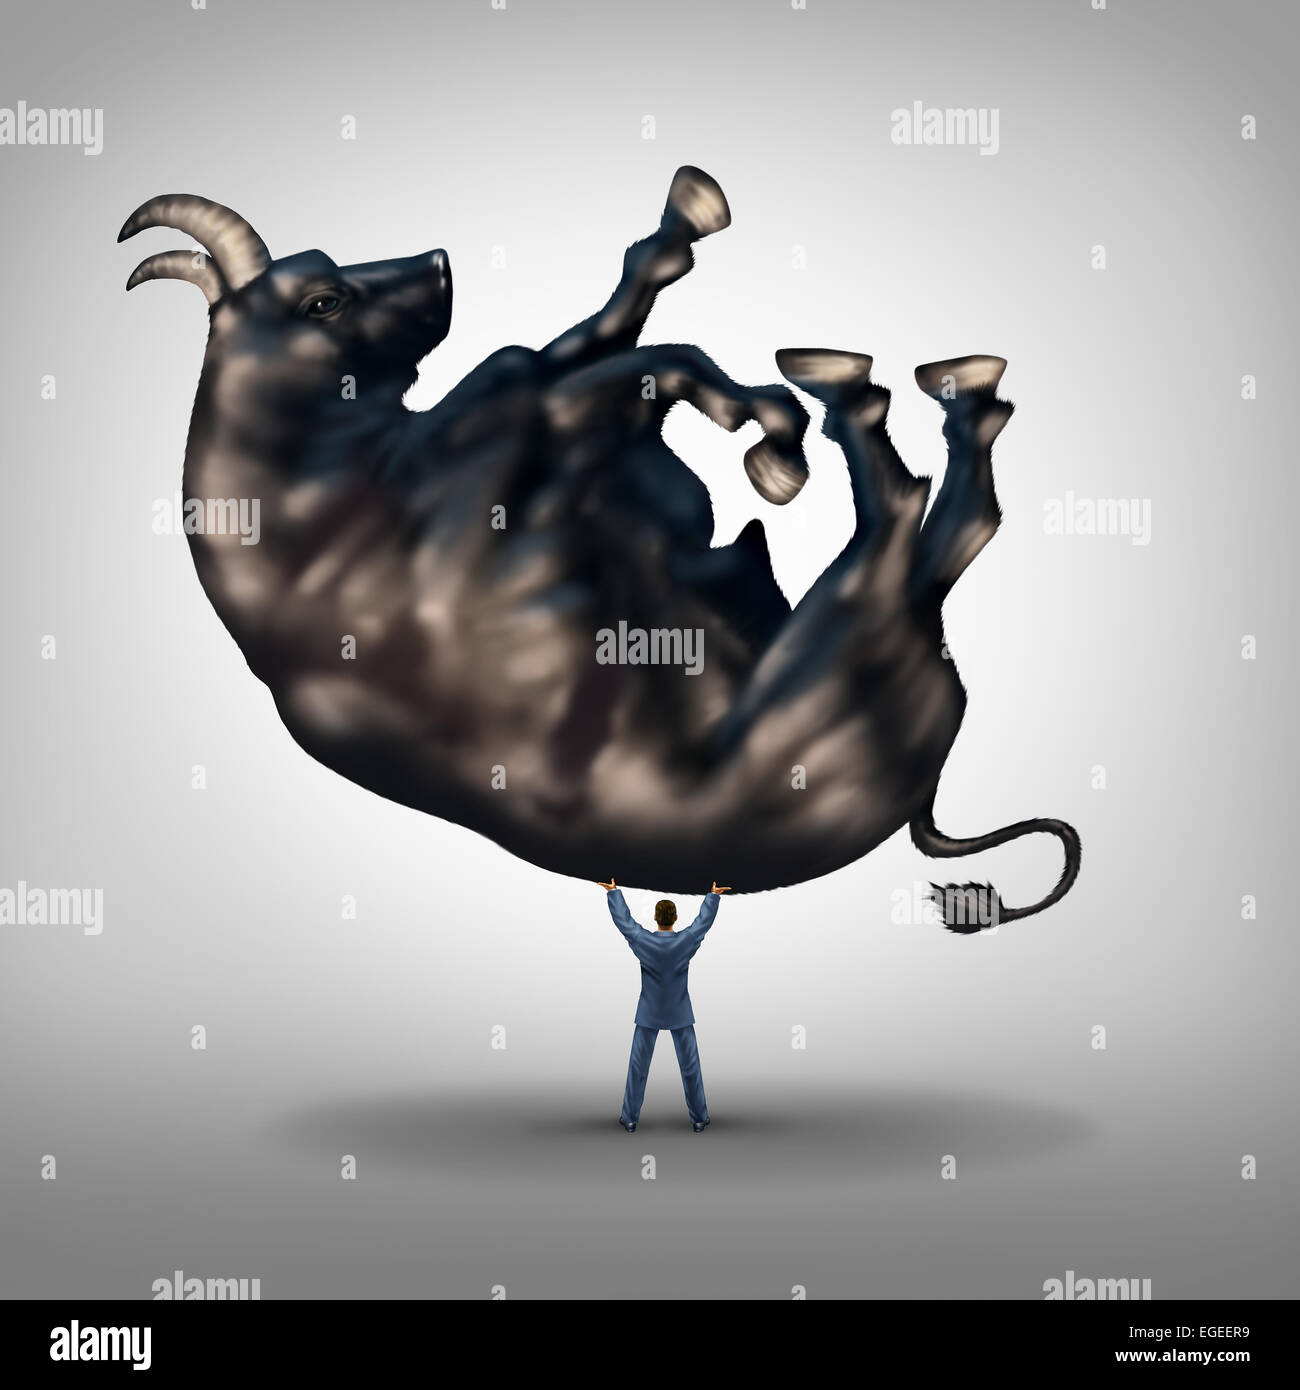 Investing solutions and financial leadership symbol and business success concept as a take charge businessman lifting - Stock Image